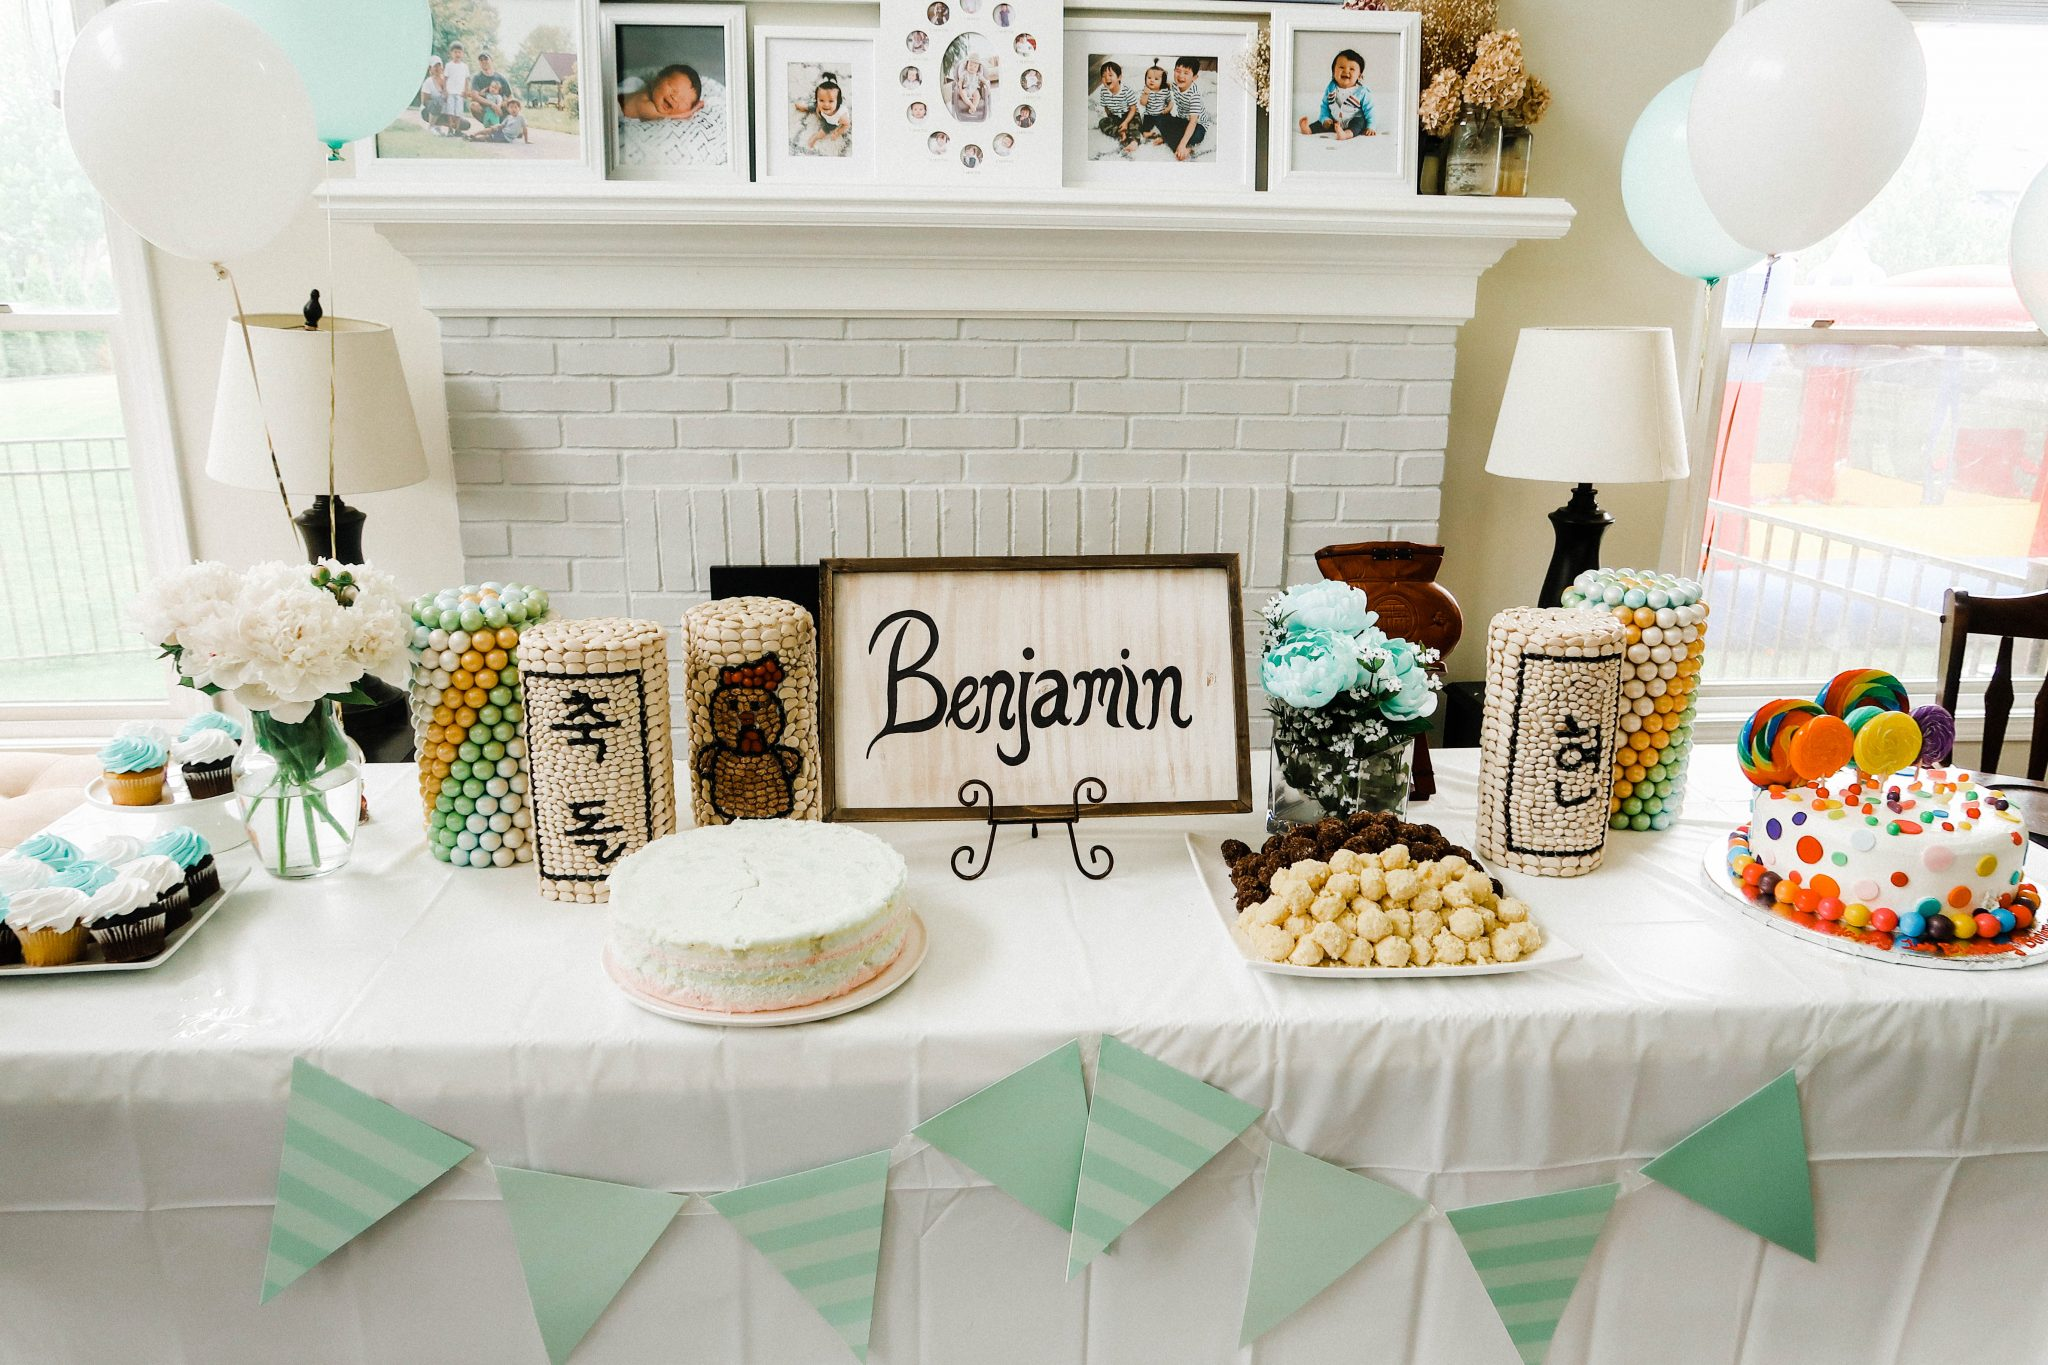 Teal + Aqua First Birthday Party (Dohl)